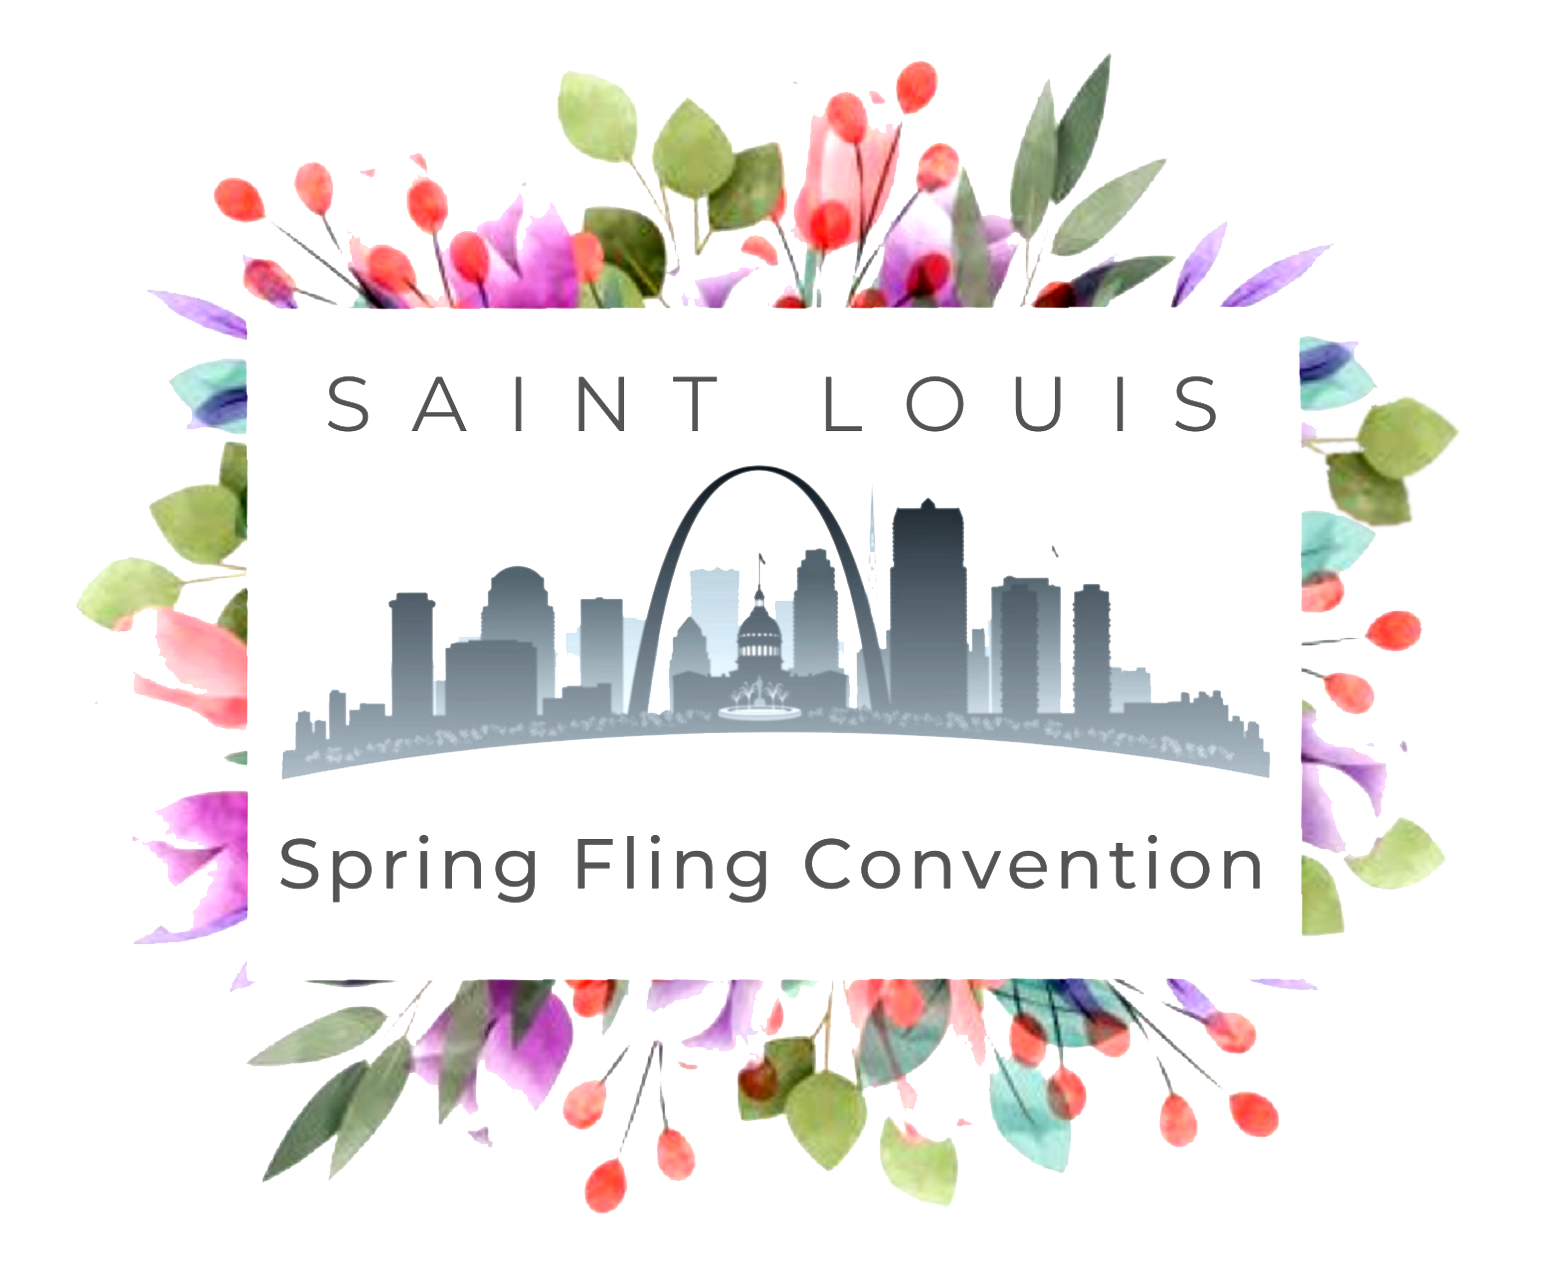 Spring Fling convention